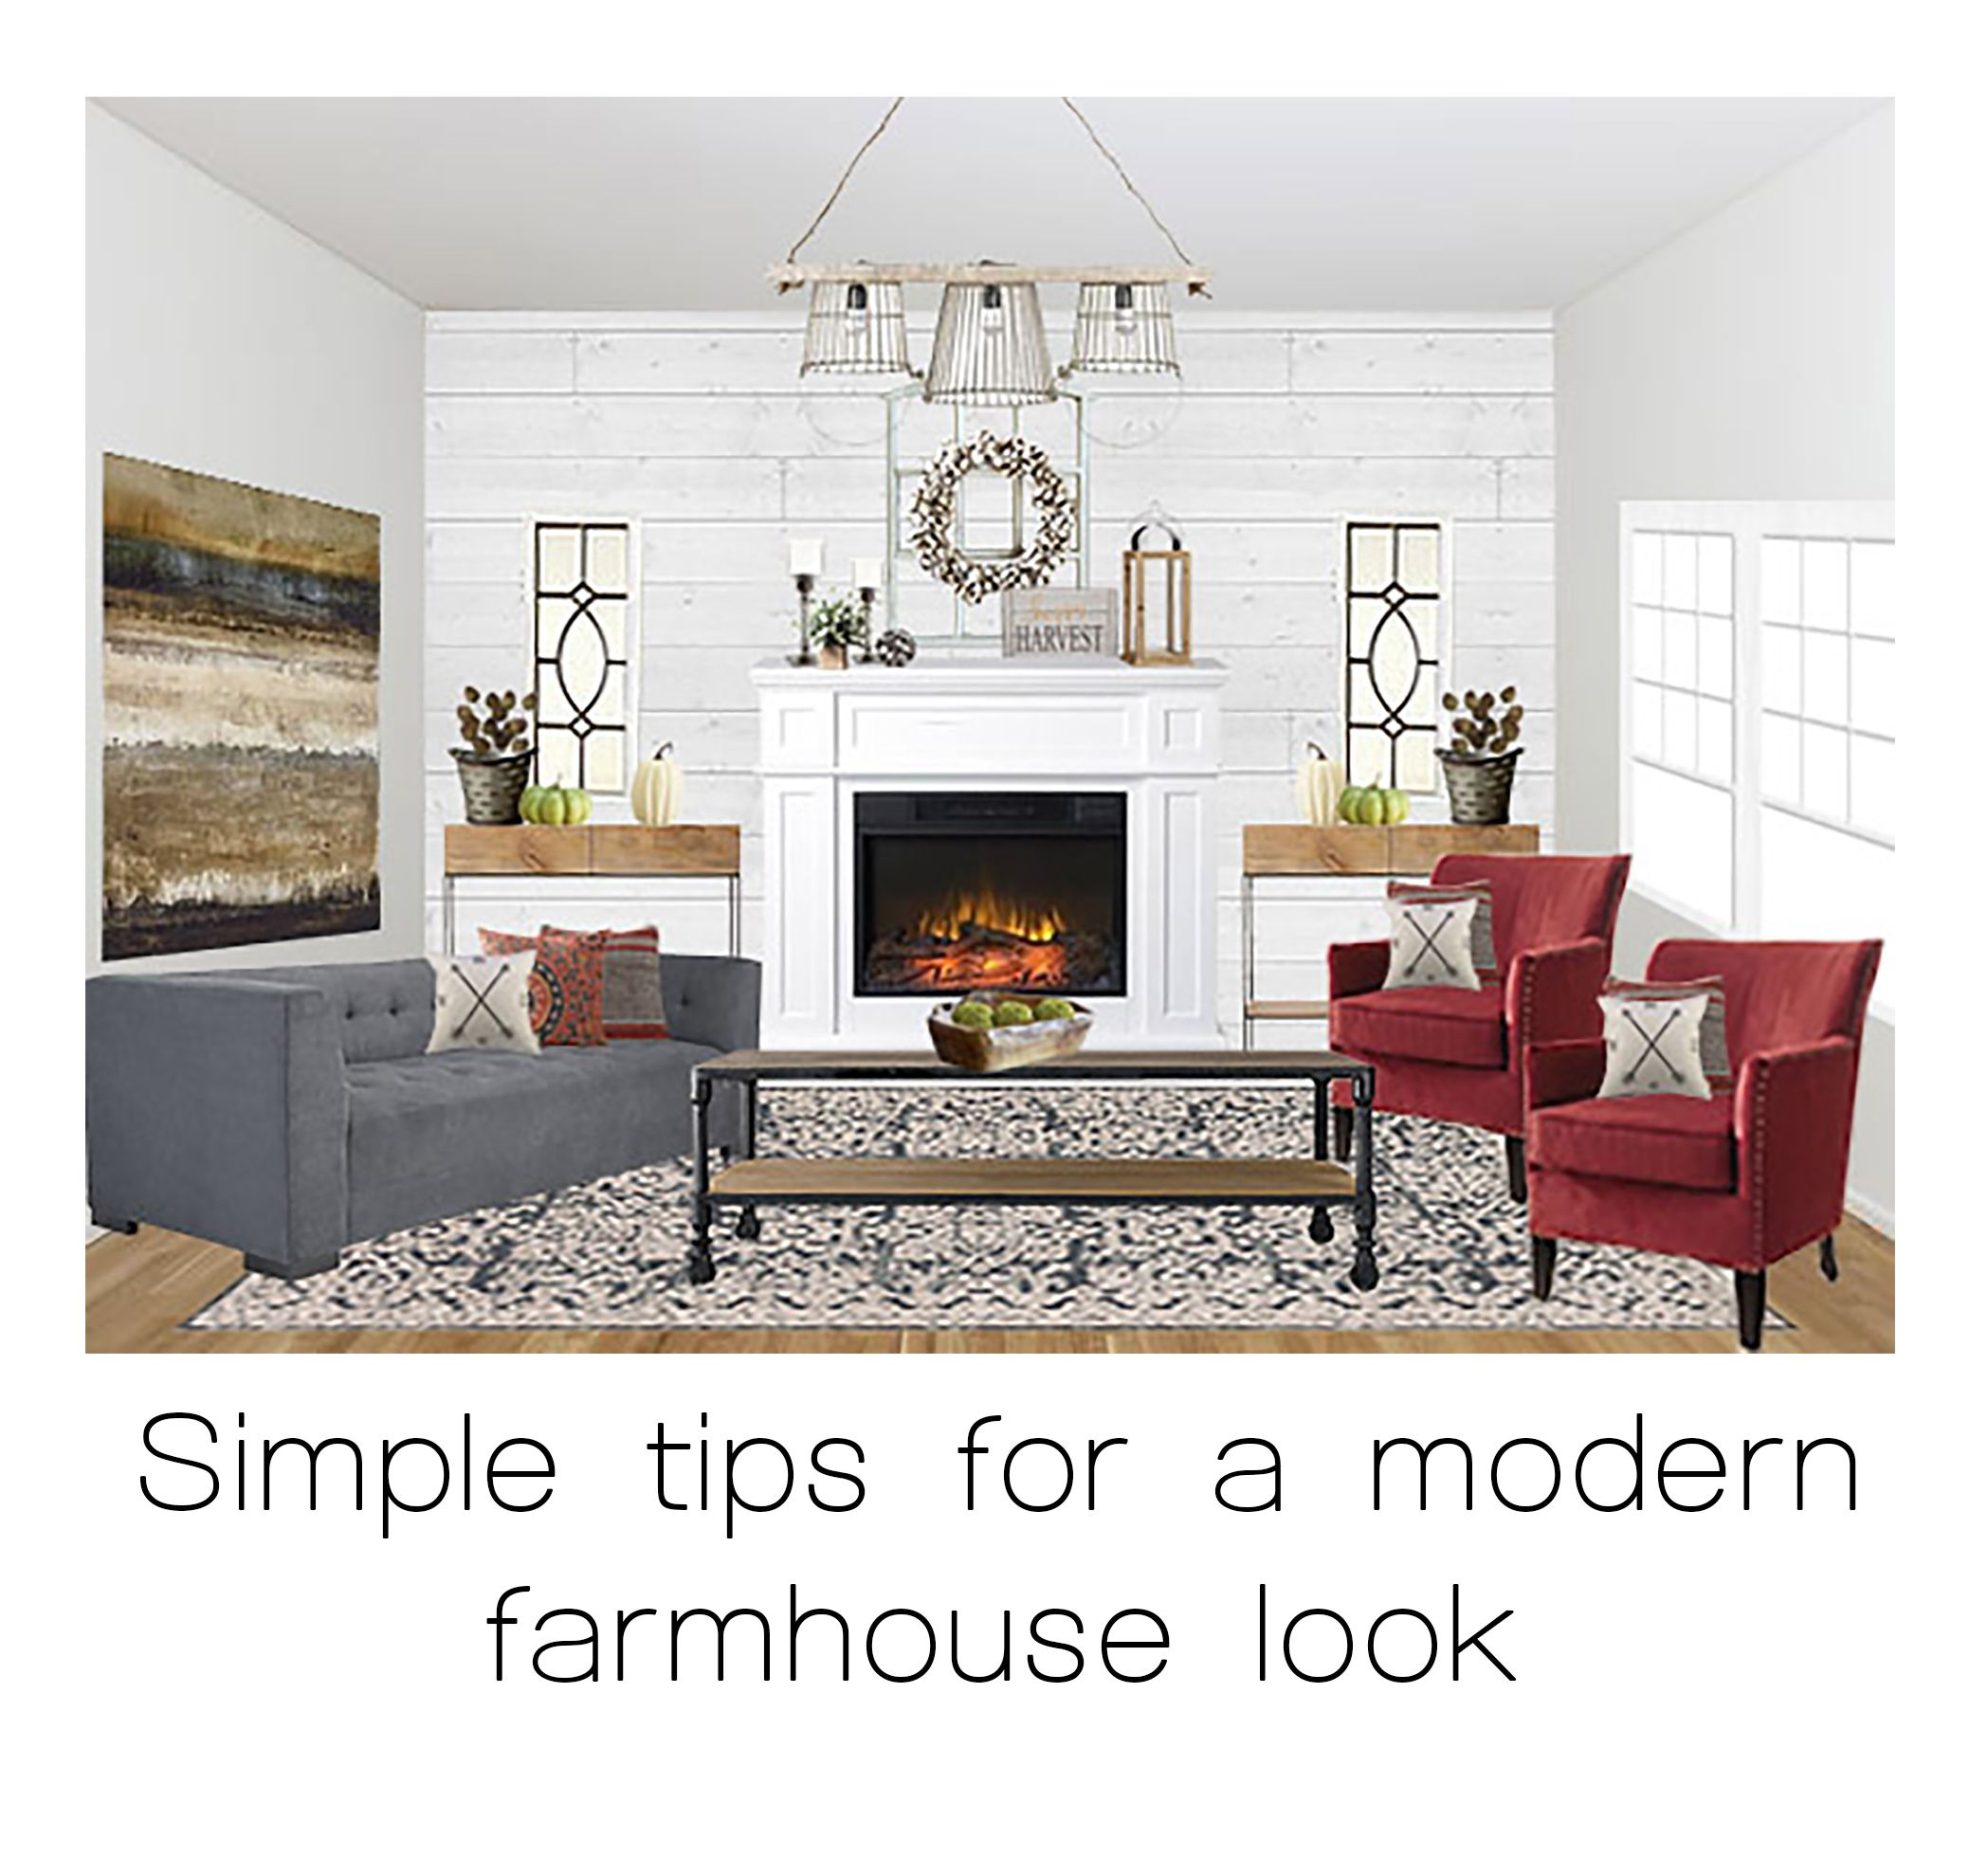 3 simple tips for a modern farmhouse look  http://www.muse-interior-design.net/blog/2016/10/29/3-simple-tips-for-adding-farmhouse-style-to-your-home